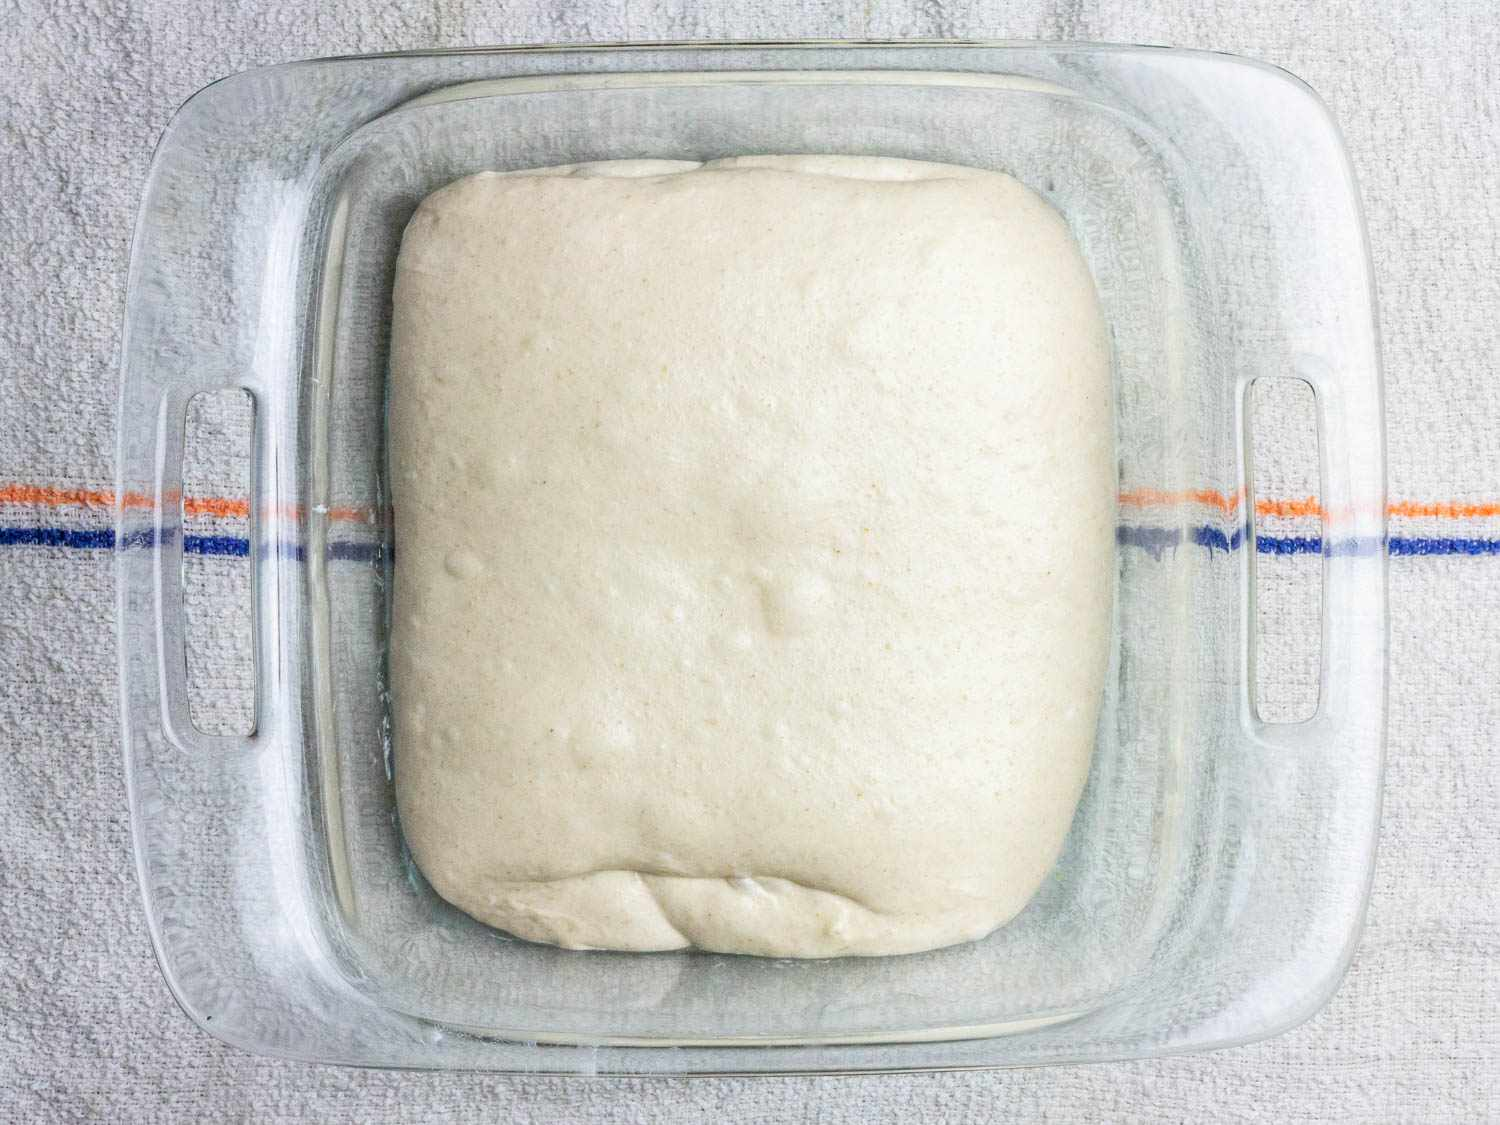 The raw dough for Sourdough bread sits in a square glass baking dish; it looks soft and tender with some visible pockets of air under the surface